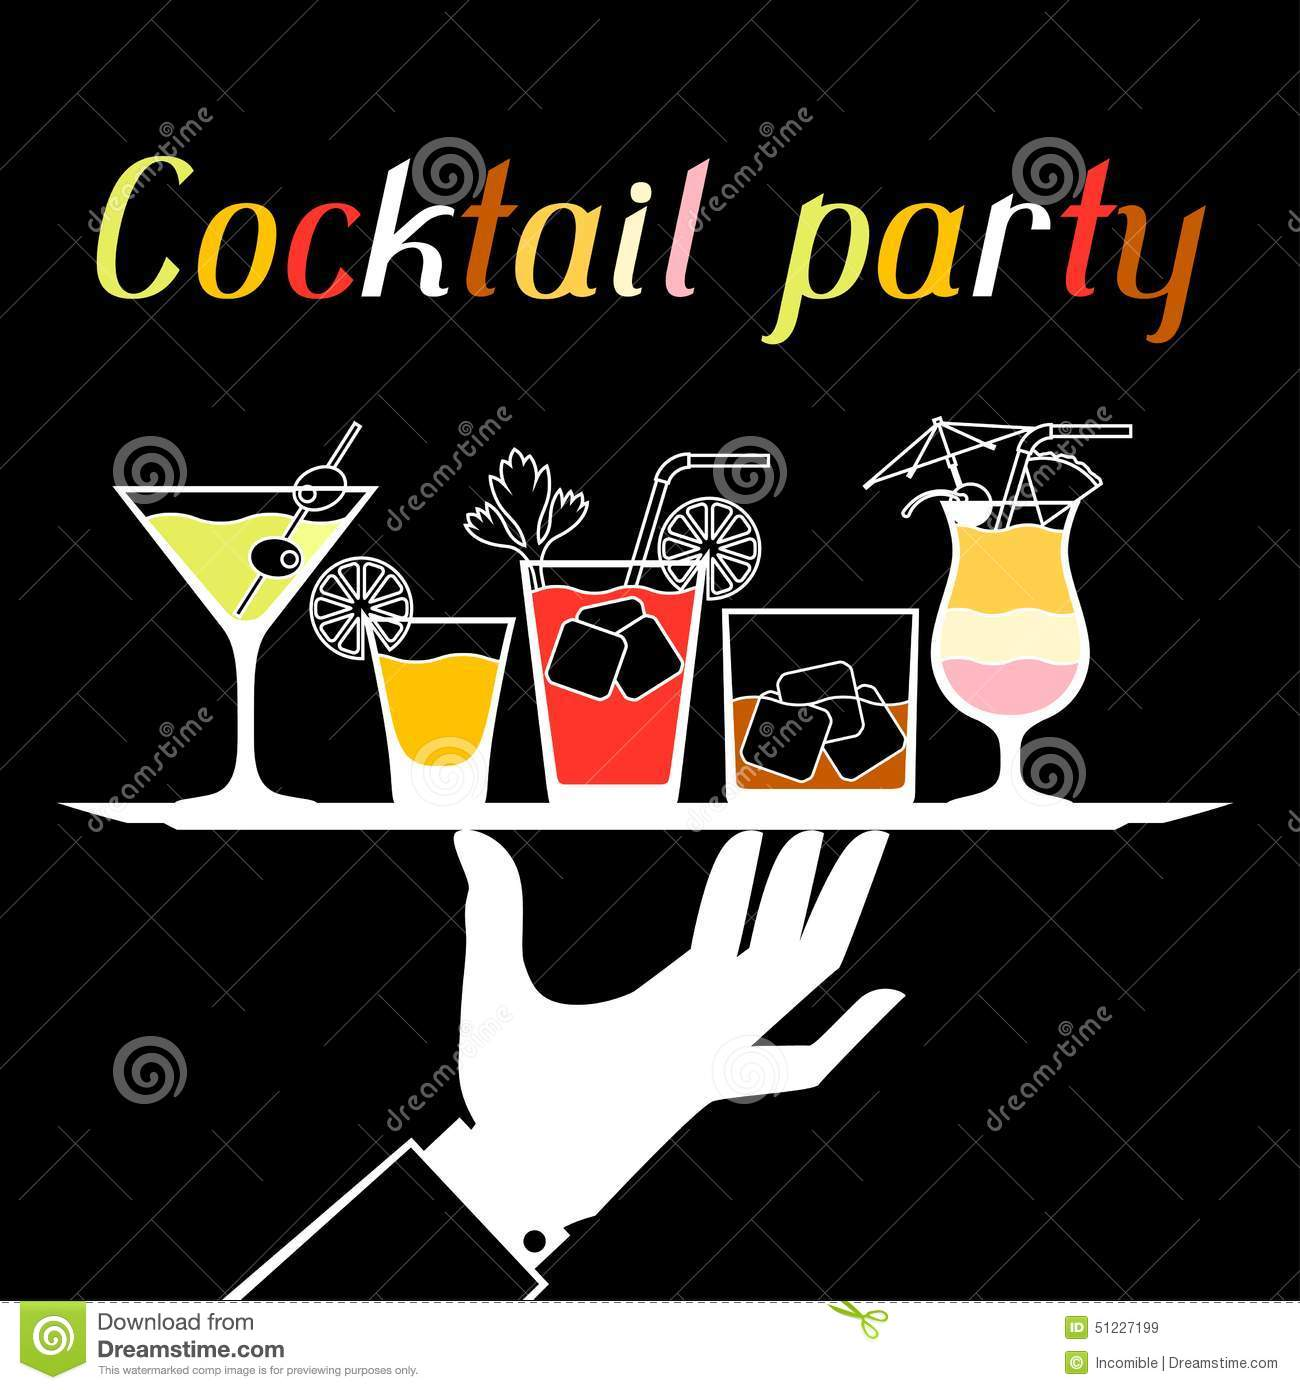 Cocktail Party Invitation Cards is great invitations sample